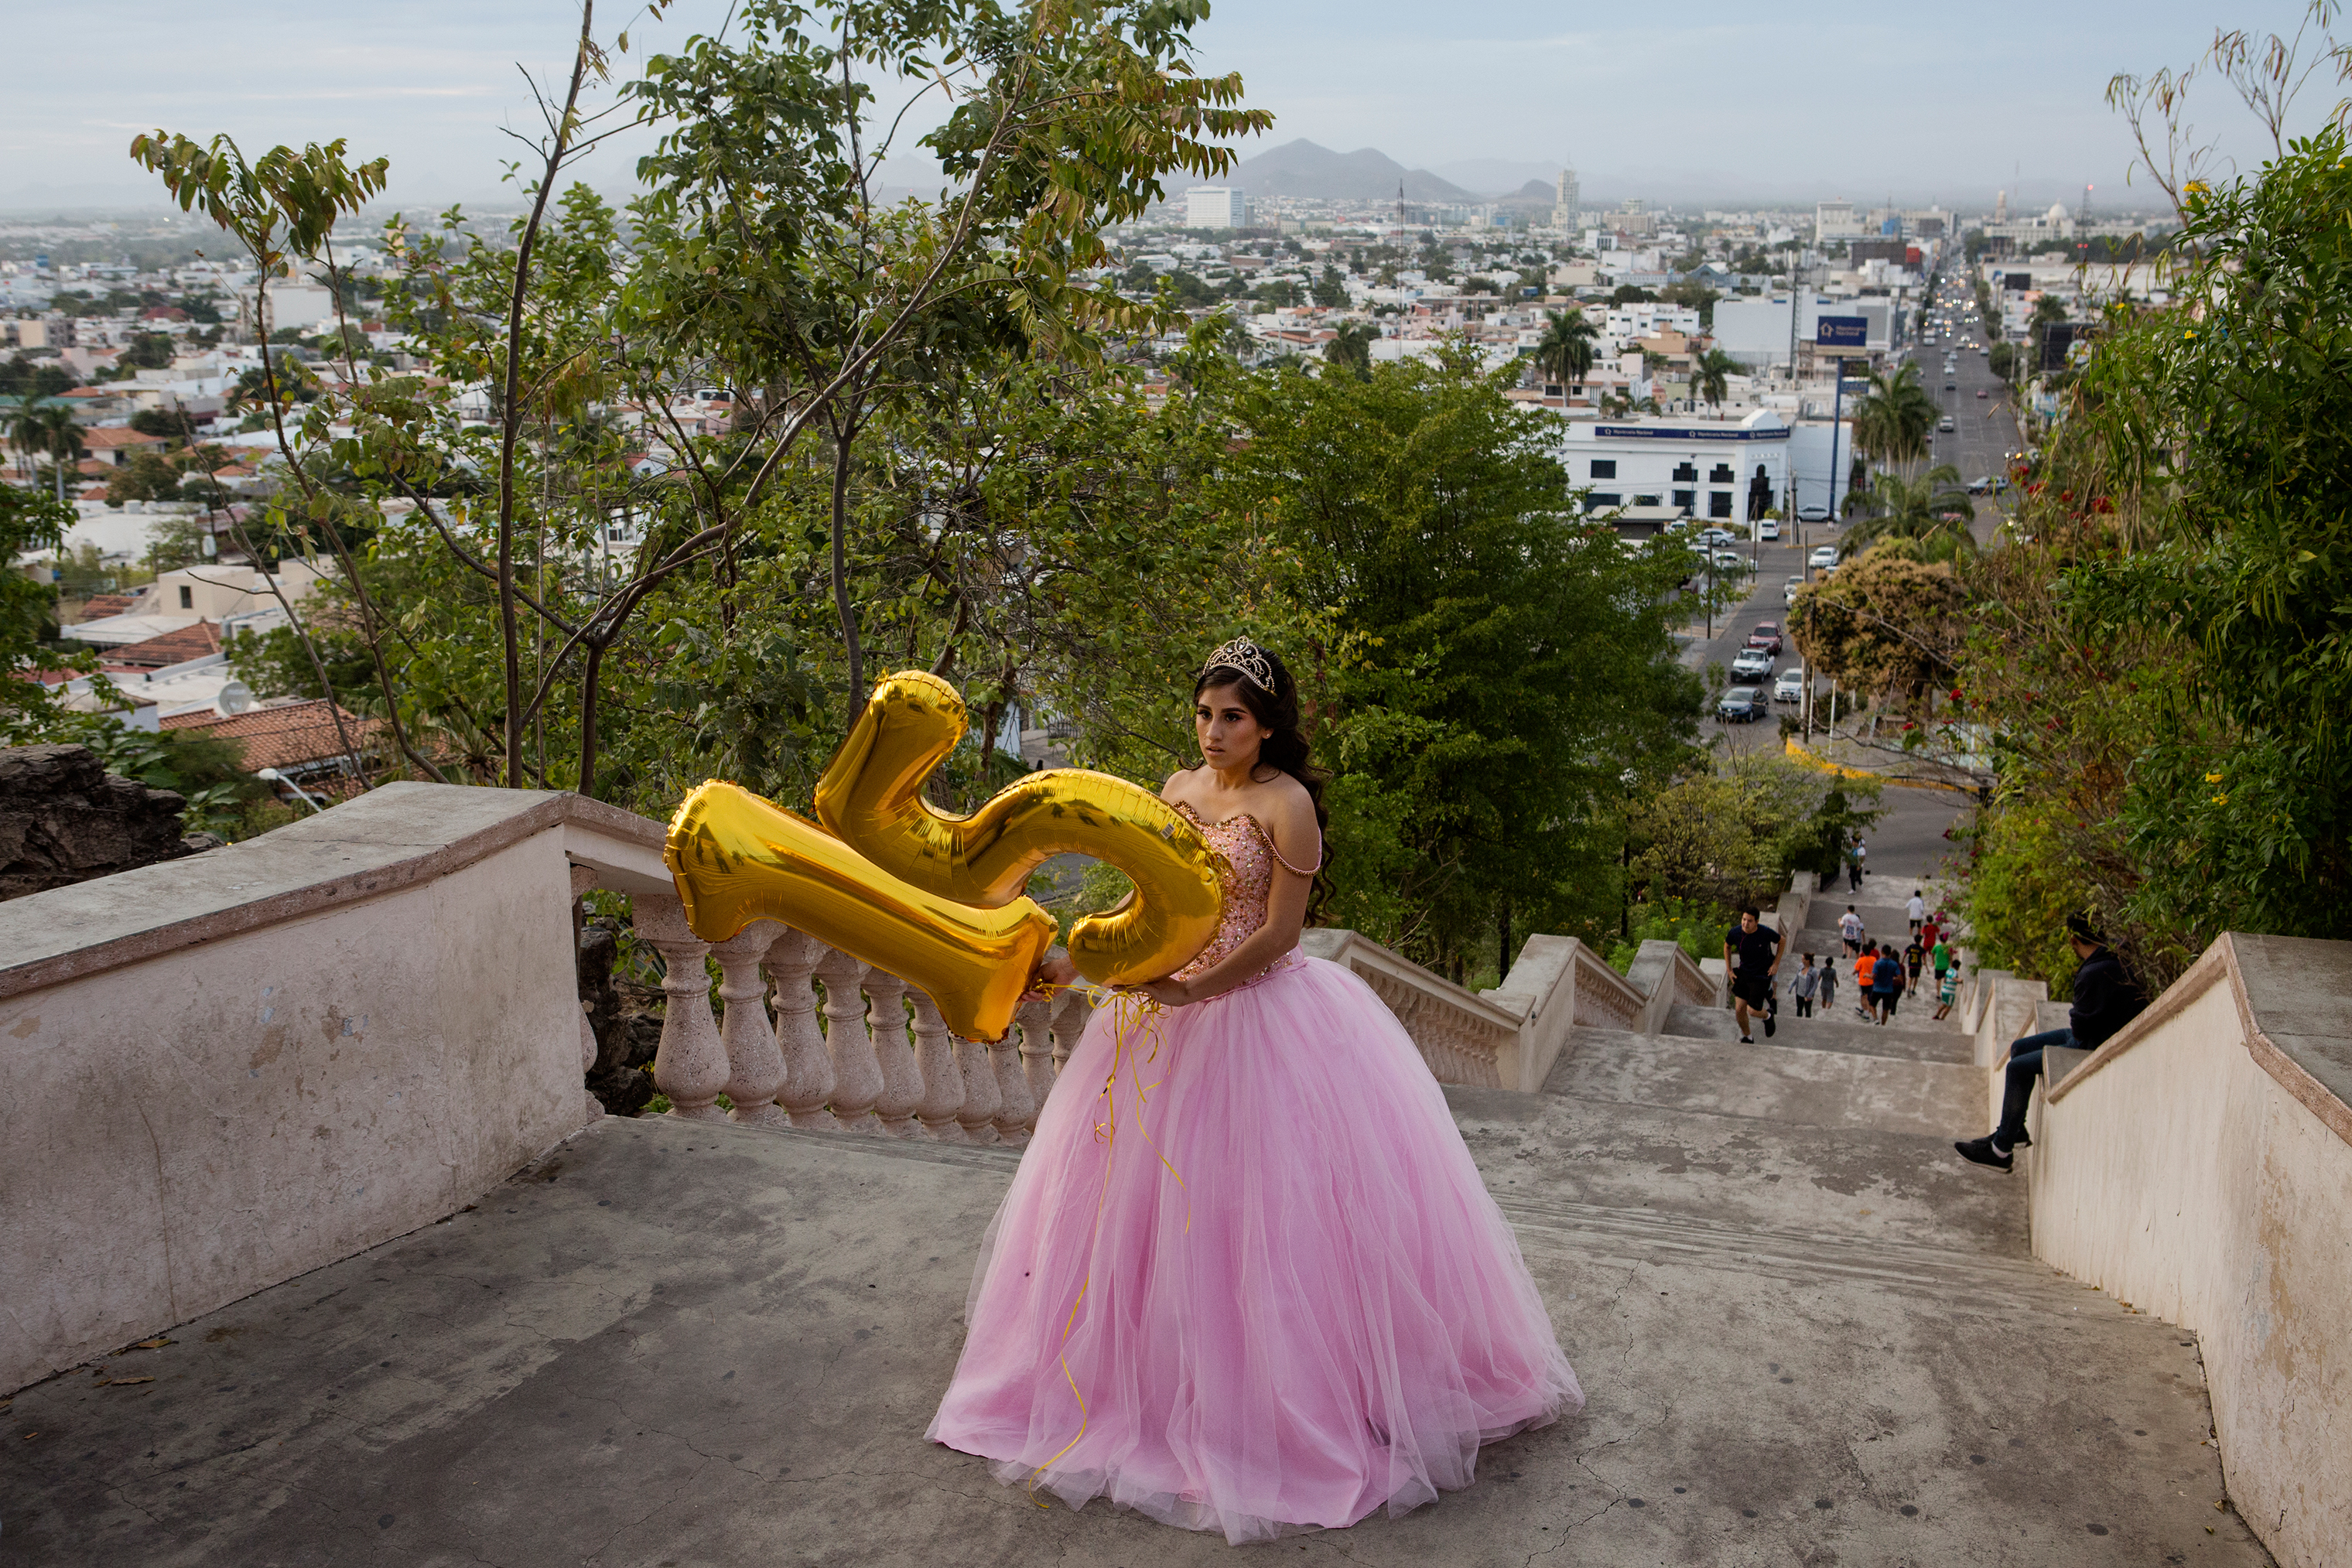 Lacey Carillo Quintera, 15, celebrates her quinceañera by taking photos with her family at the La Lomita overlook in Culiacán, Sinaloa, in February.